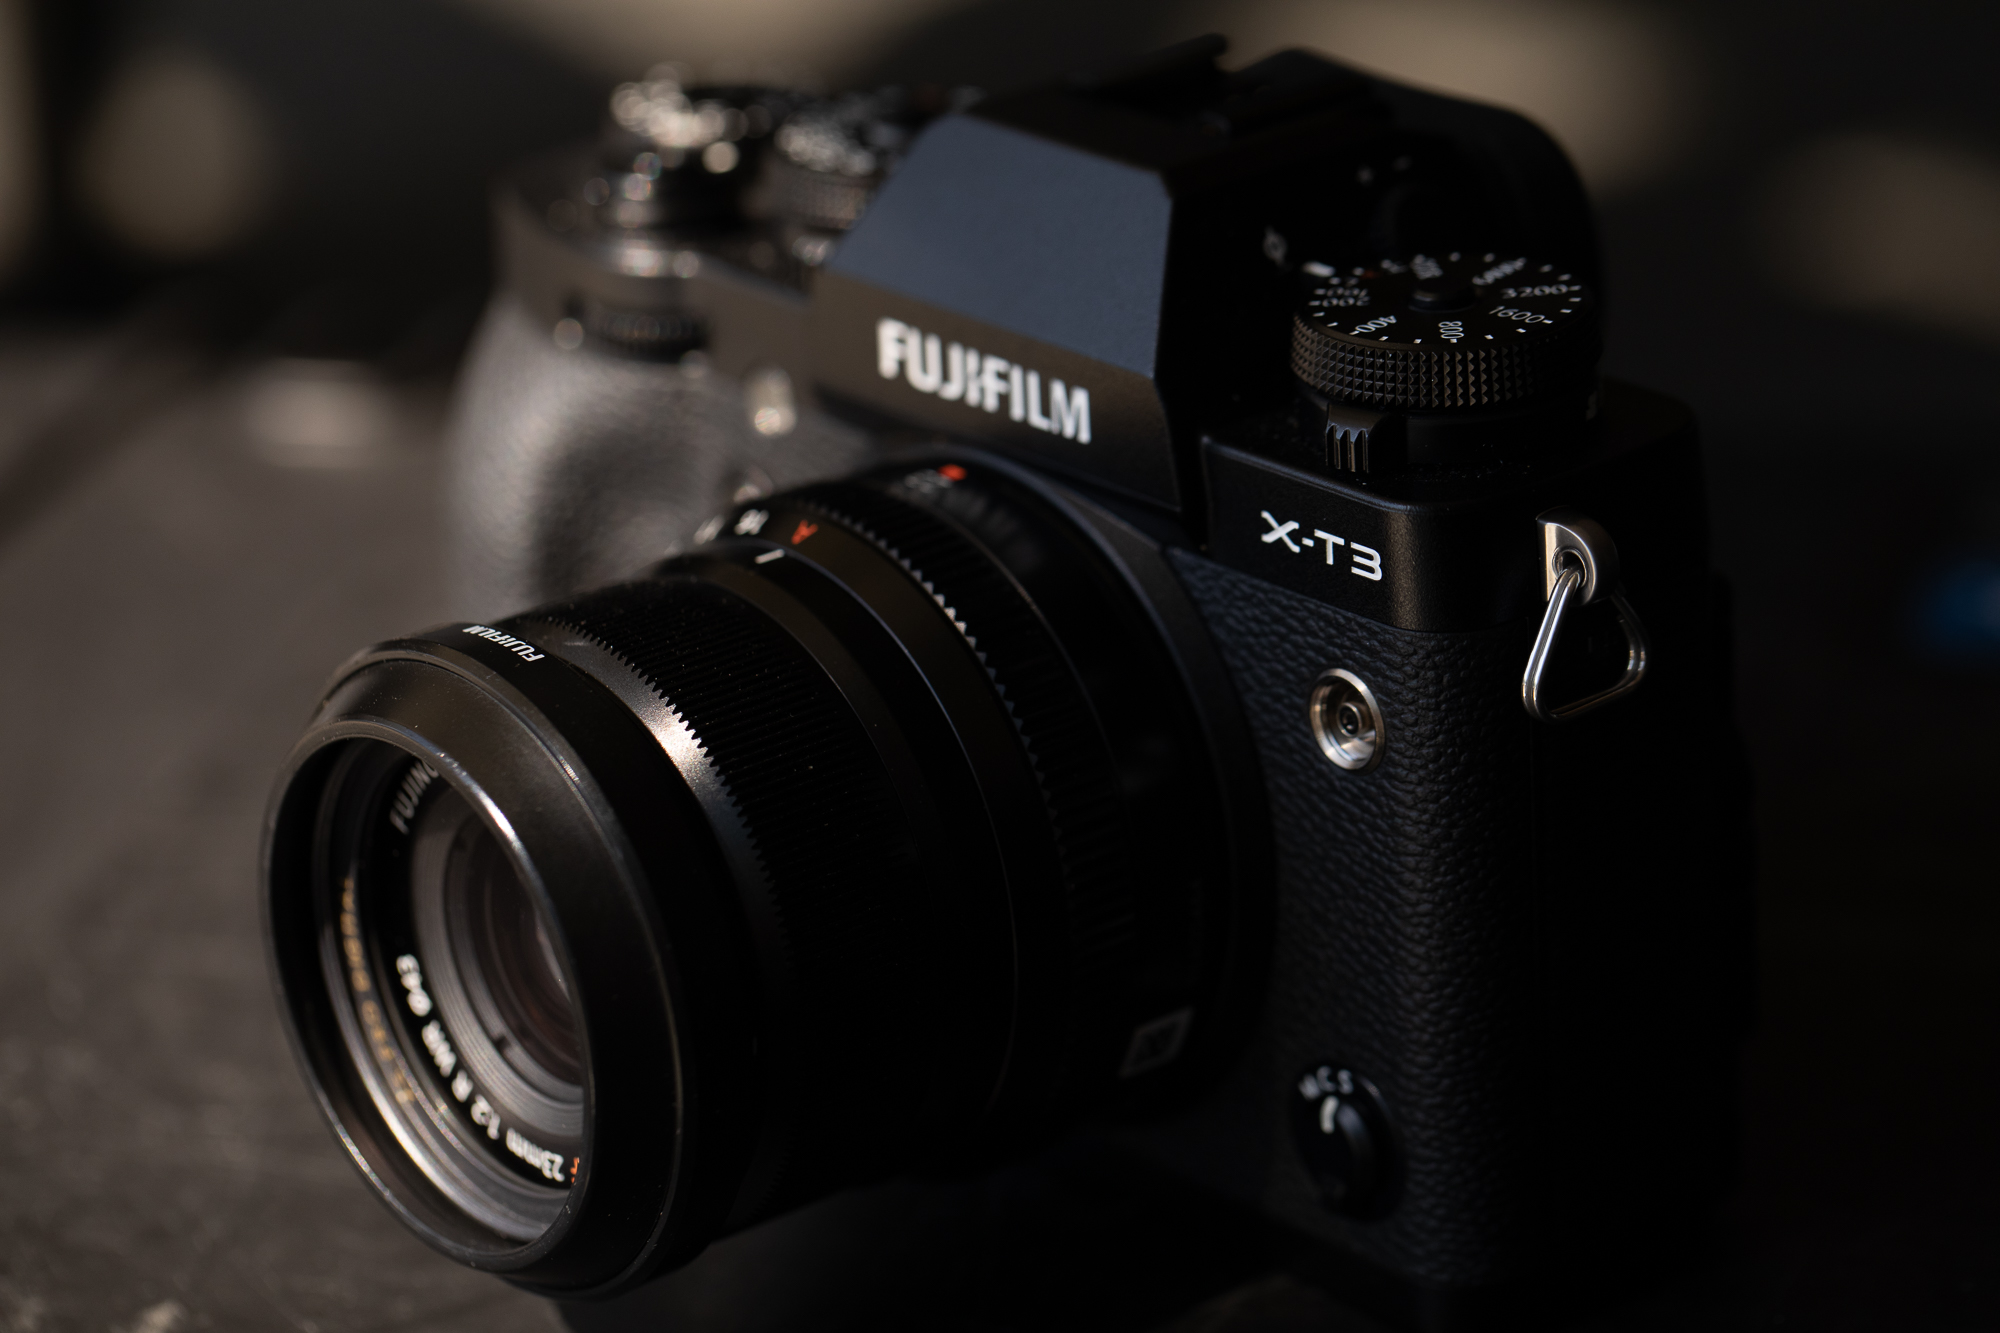 Fuji X-T3 Rentals and Review